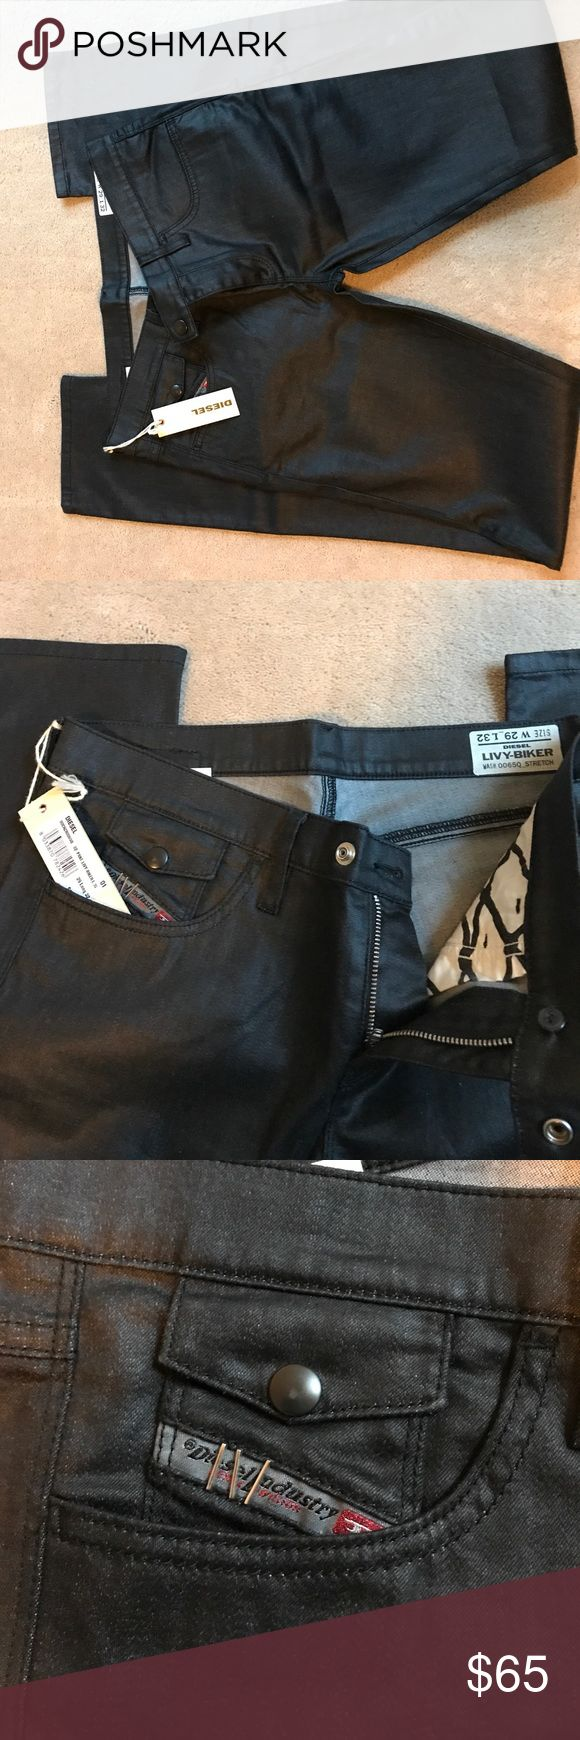 Diesel Pant Livy Biker Jeans NWT Diesel Jeans with shiny waxed like look! Perfect for fall! Cute details on pockets! Diesel Jeans Skinny